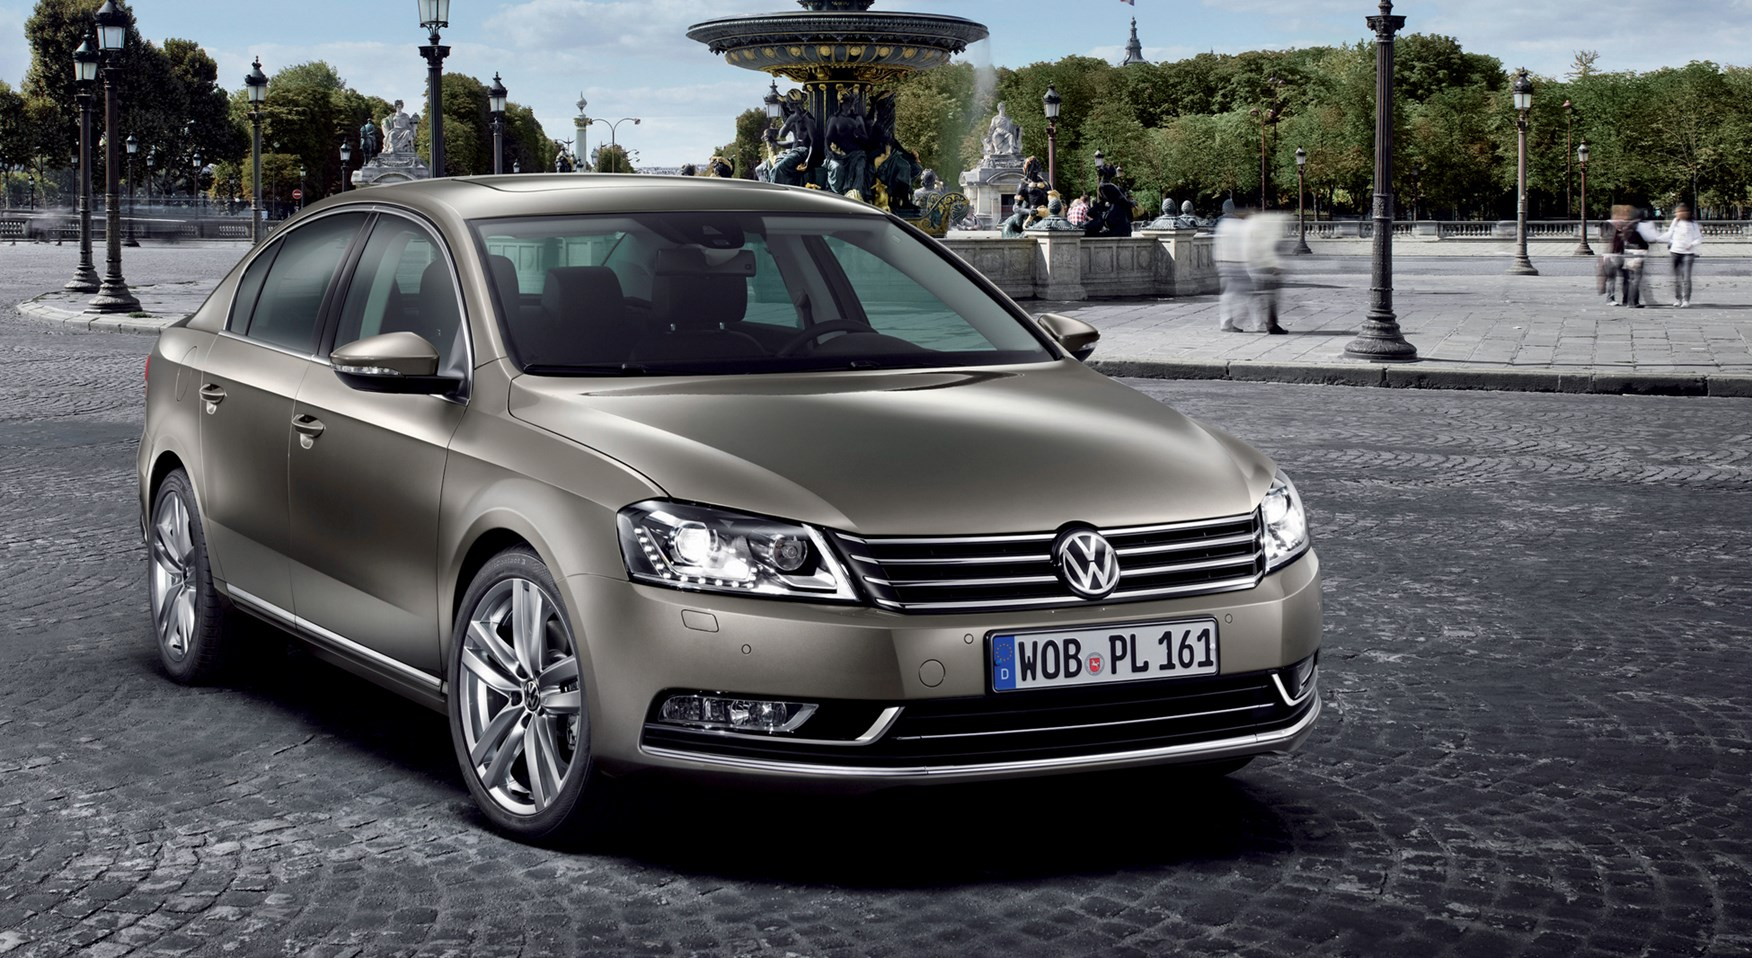 volkswagen passat saloon review 2011 2014 parkers. Black Bedroom Furniture Sets. Home Design Ideas